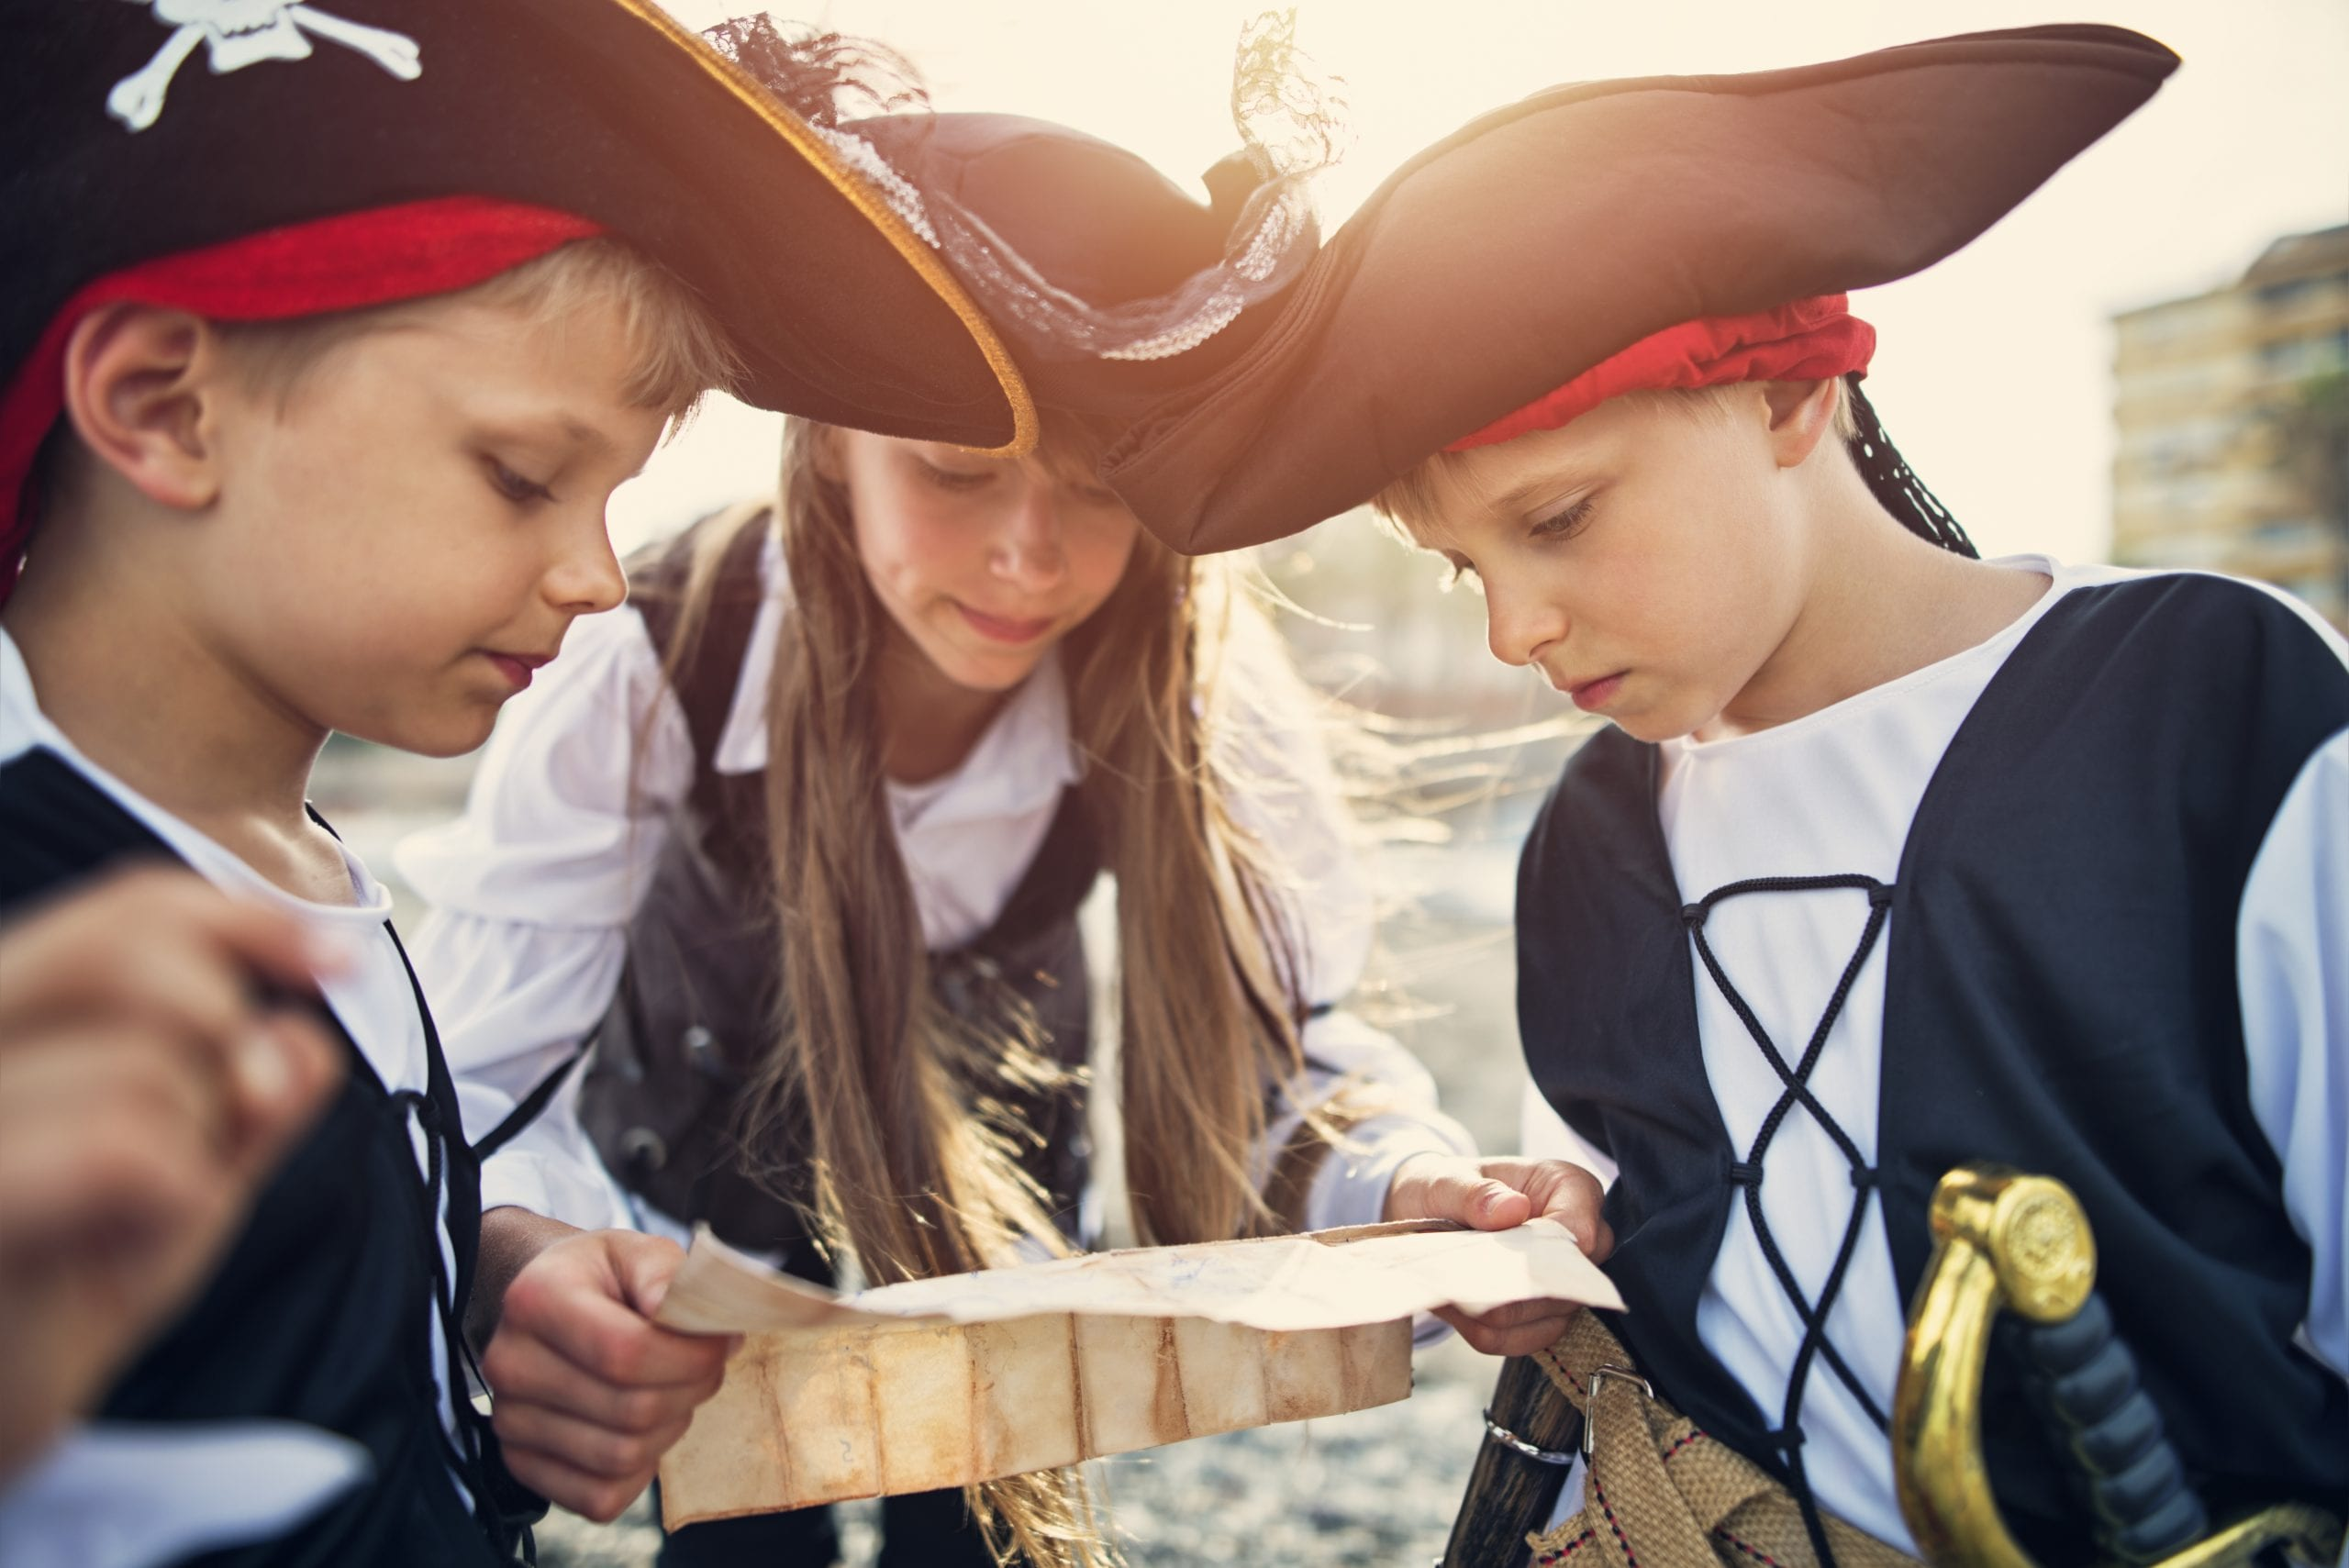 Three little pirates, a girl aged 11 and two boys aged 7 are playing pirates on the beach. They are trying to read ancient treasure map that leads to ... a treasure.